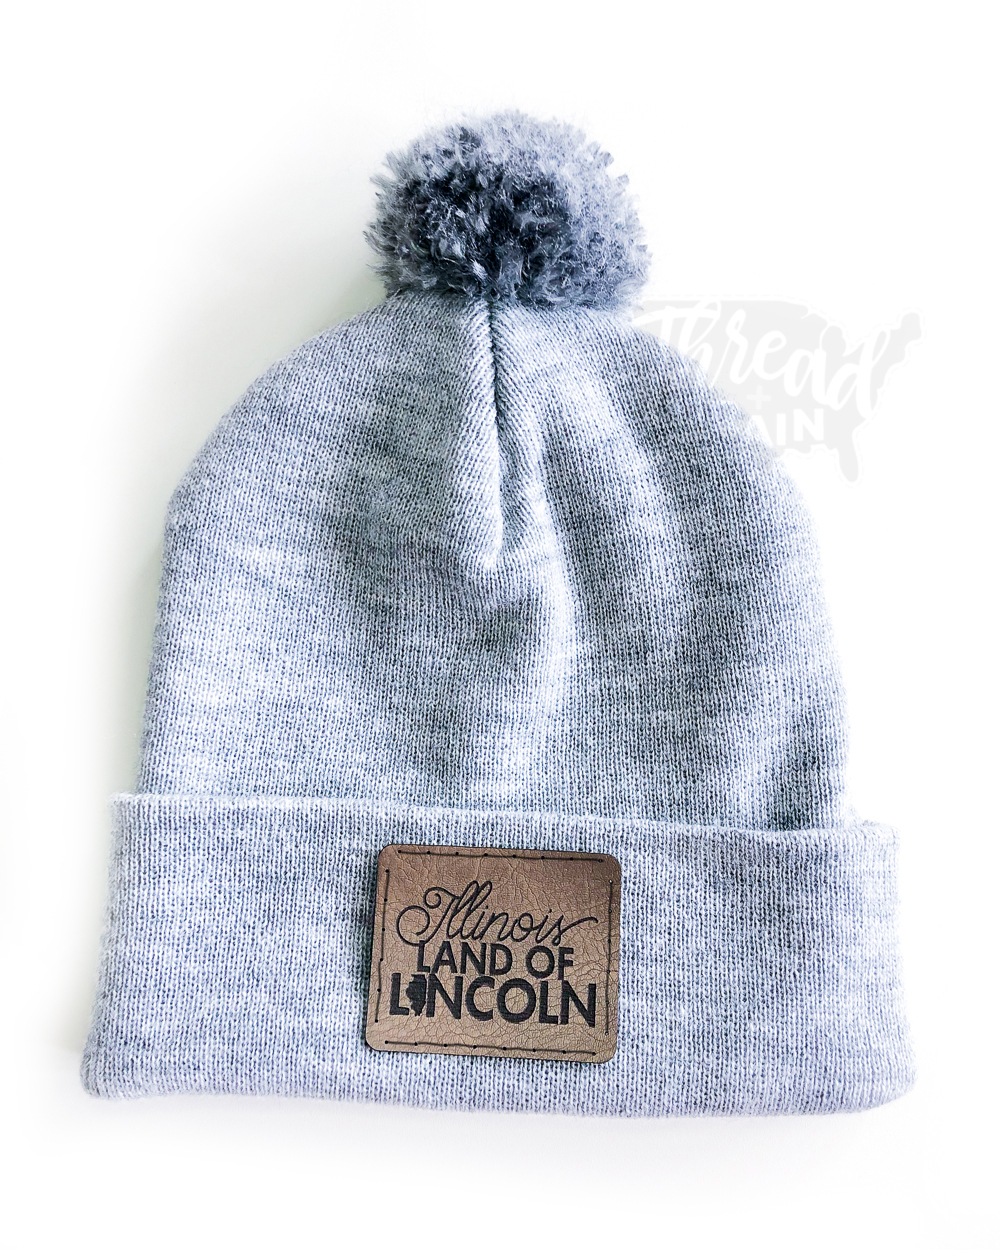 Illinois :: Land of Lincoln PATCHED HAT